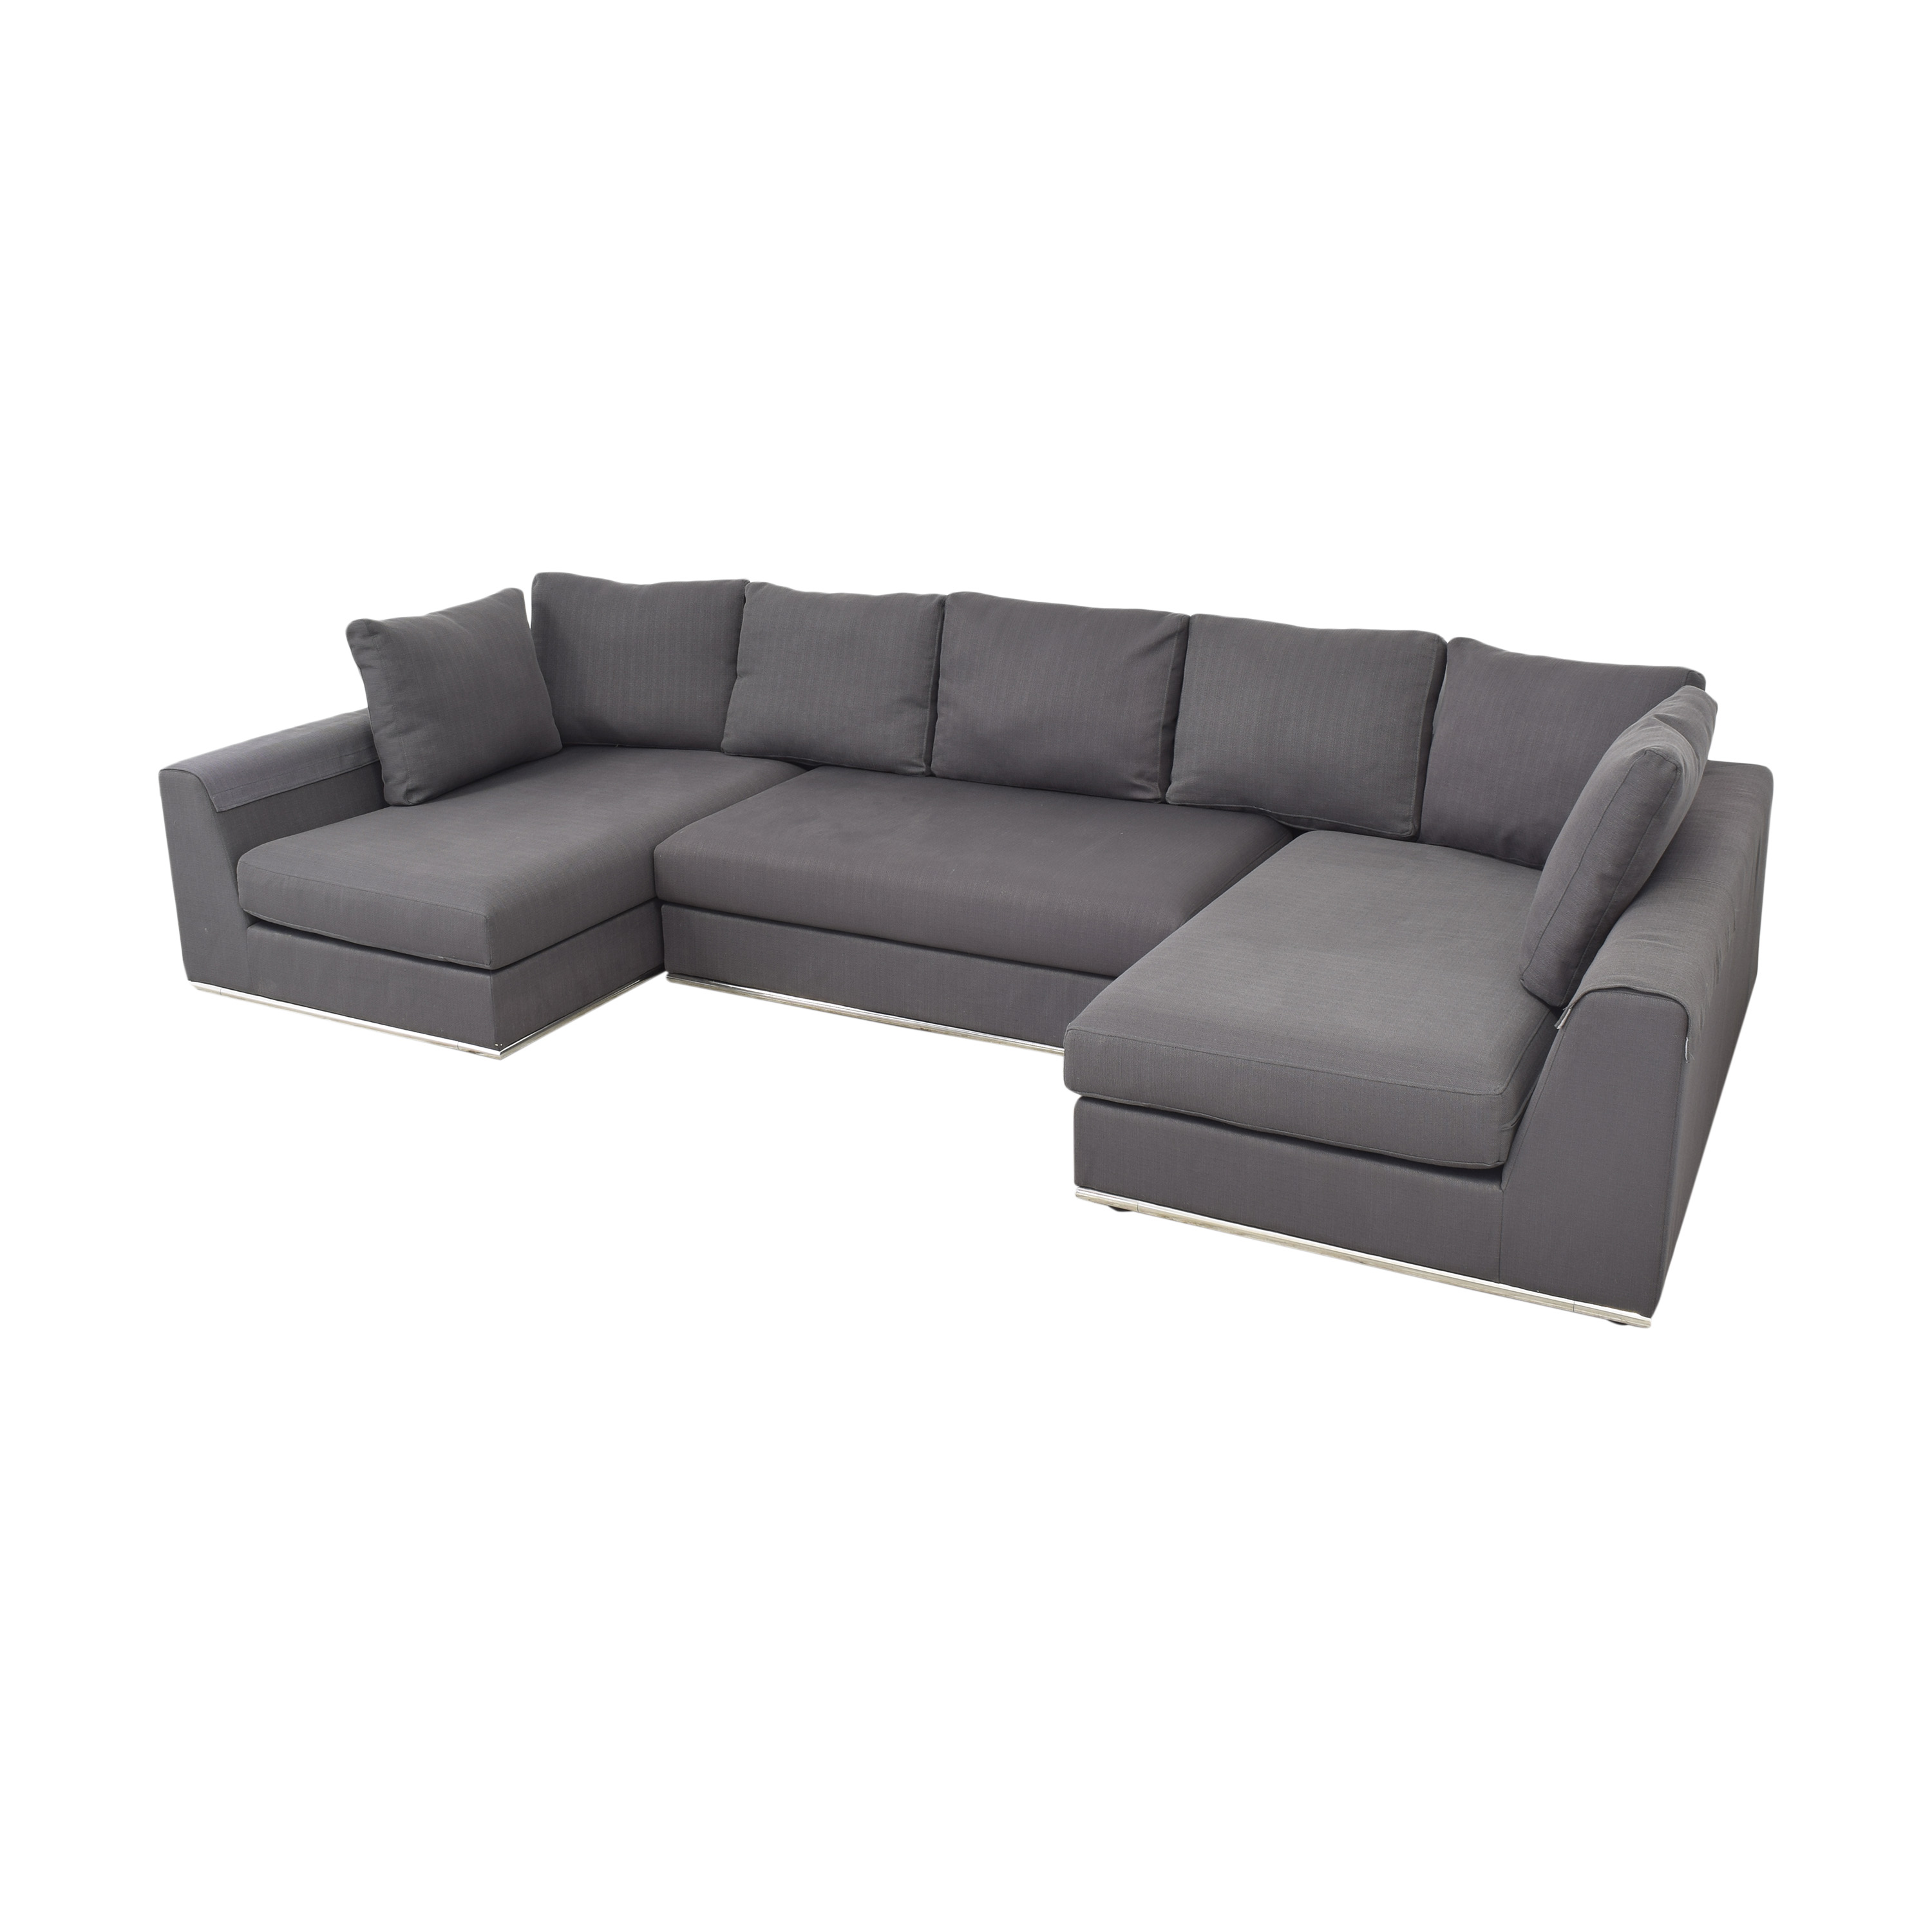 Modani Sectional Sofa with Two Chaises / Sofas